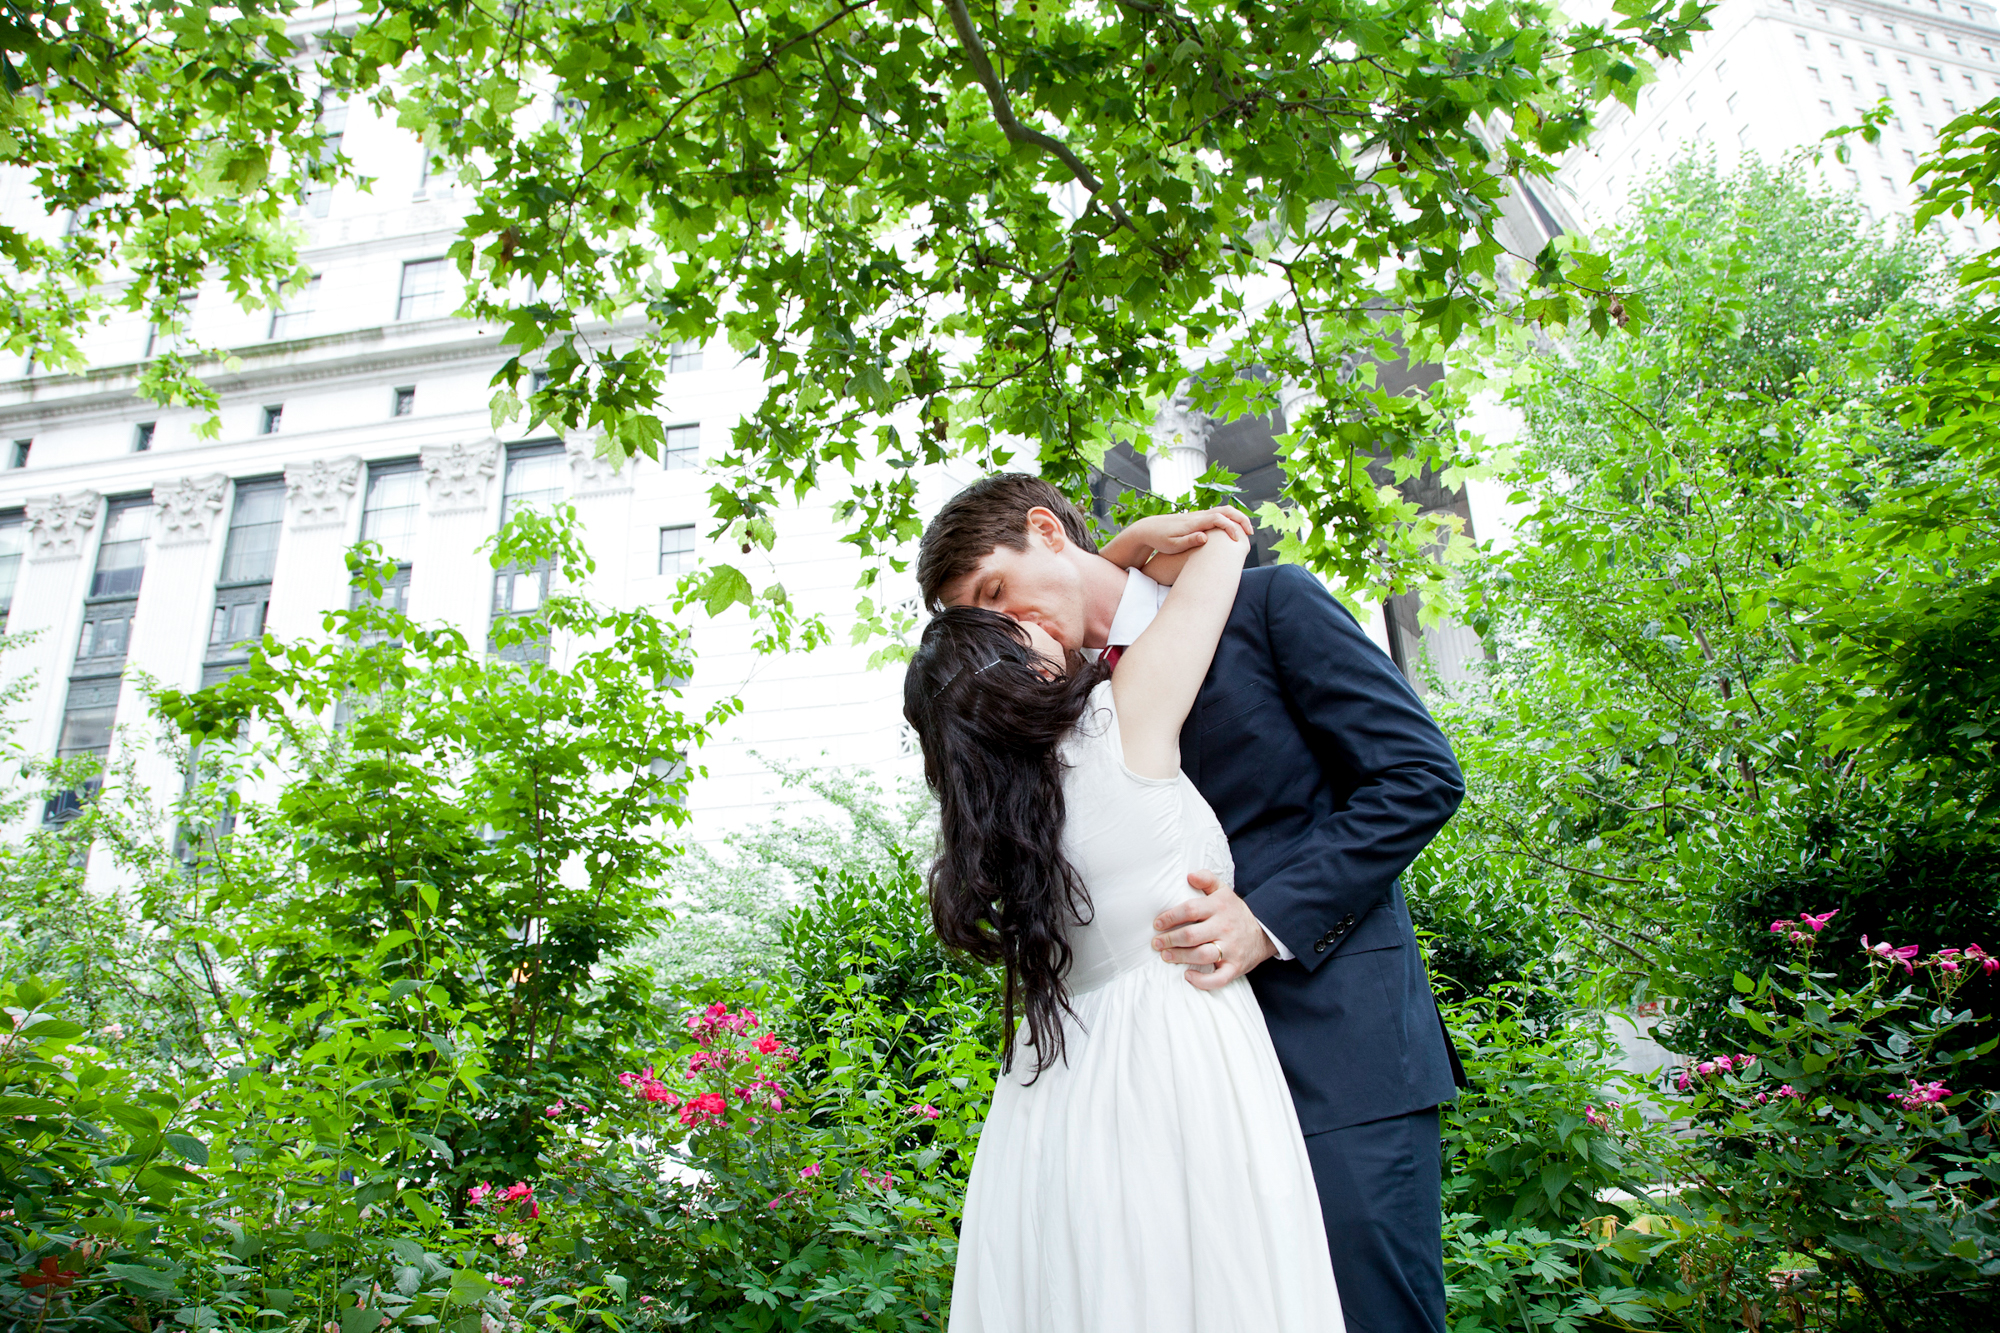 086_CarlyGaebe_SteadfastStudio_WeddingPhotography_NewYorkCity_CityHall_Courthouse_Bride_Groom_Foliage.jpg